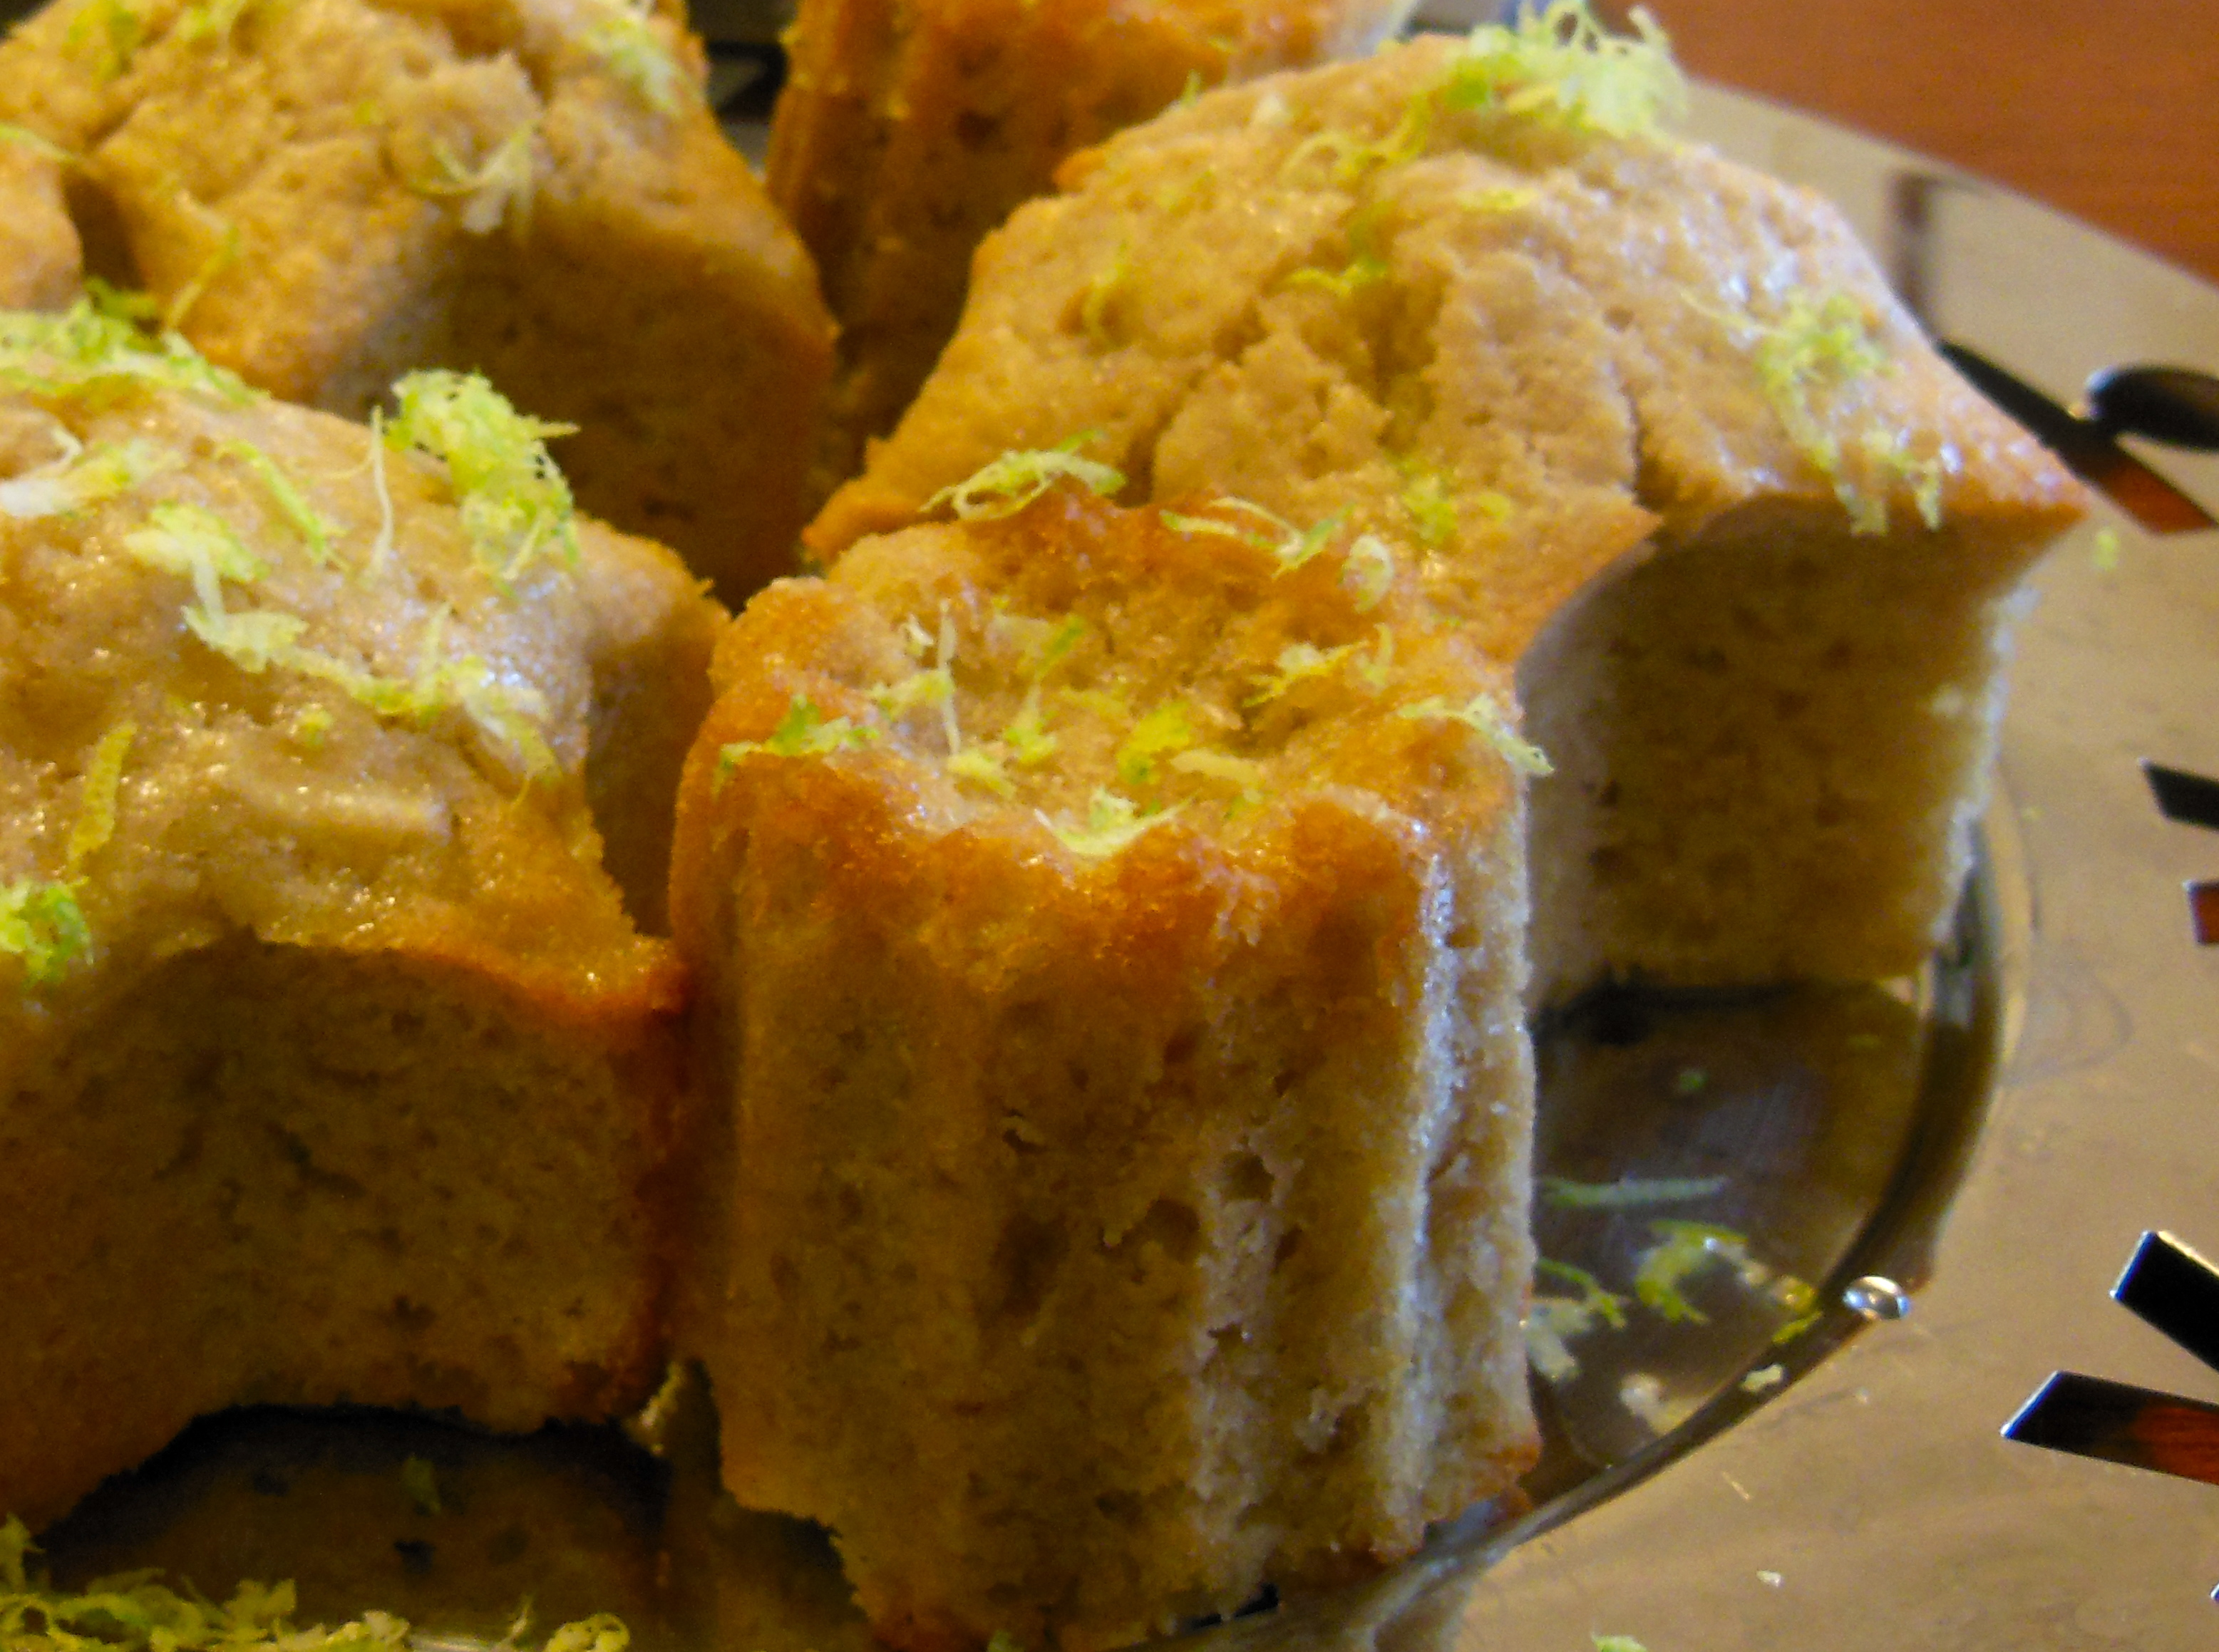 Feijoa Muffins with lime syrup